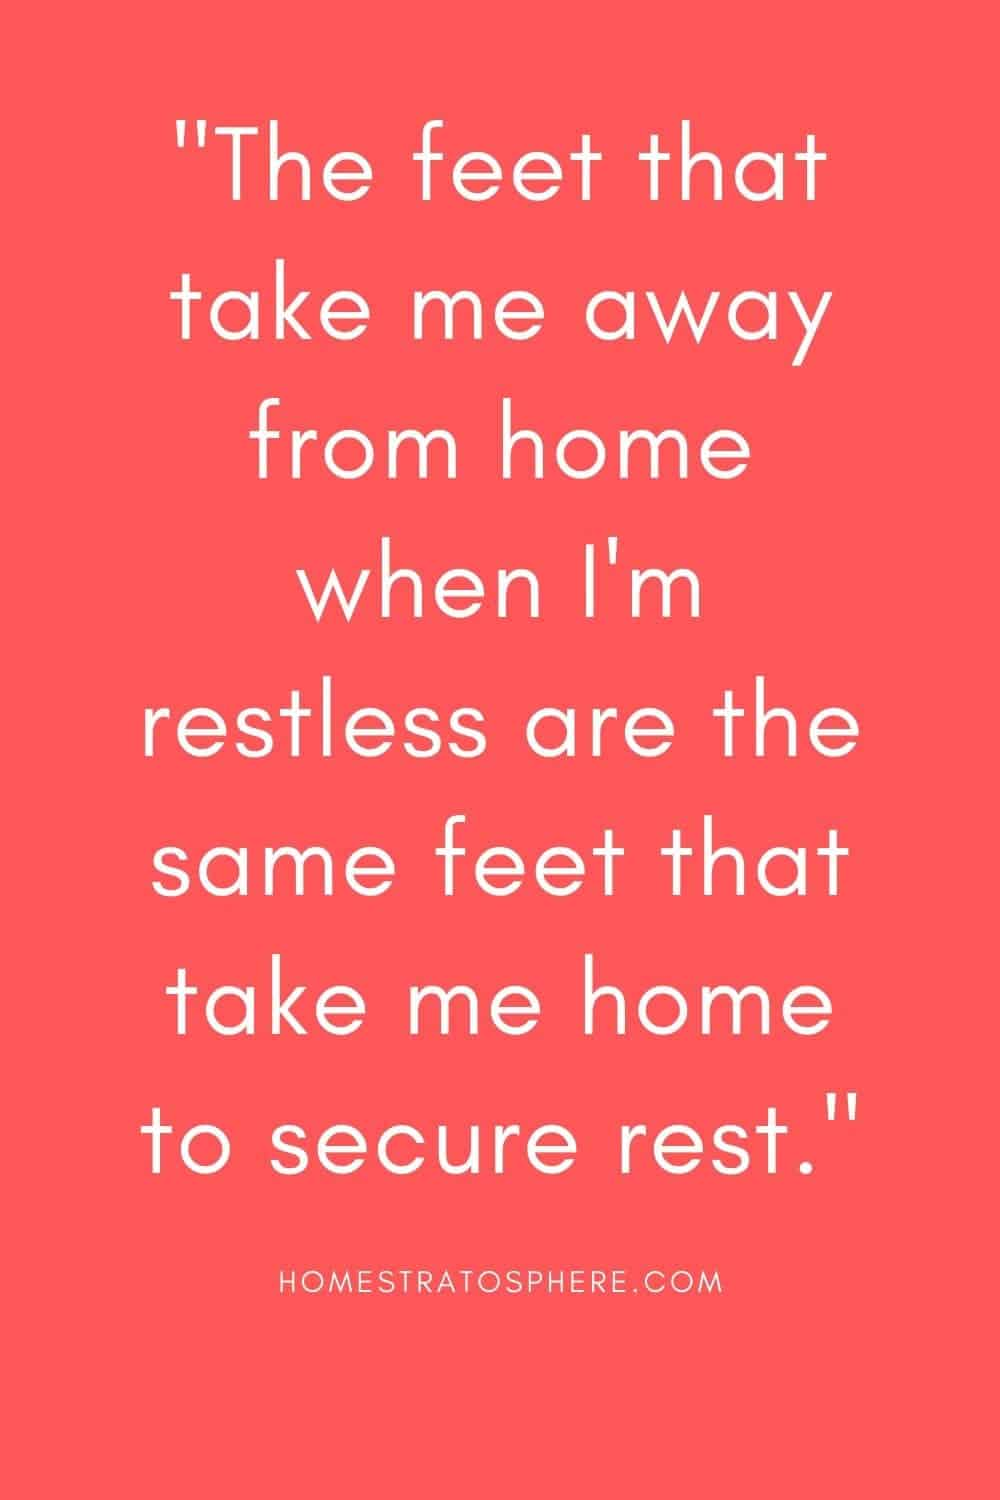 """""""The feet that take me away from home when I'm restless are the same feet that take me home to secure rest."""""""